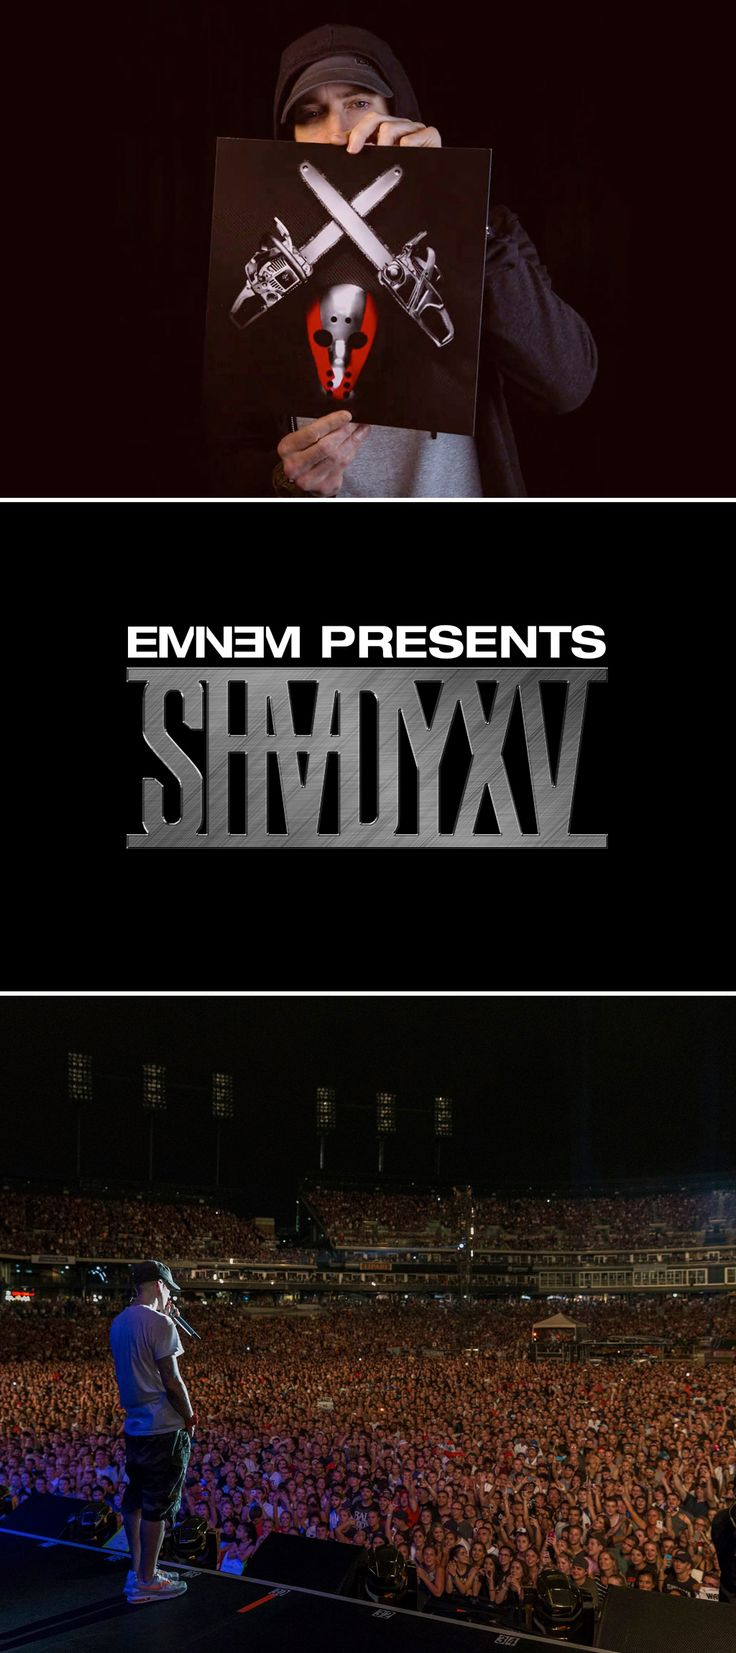 #Eminem is currently the second-highest selling male artist of the modern era and the hype around the release of the latest album #ShadyXV is as epic as the disc itself. Check out Shady XV...!